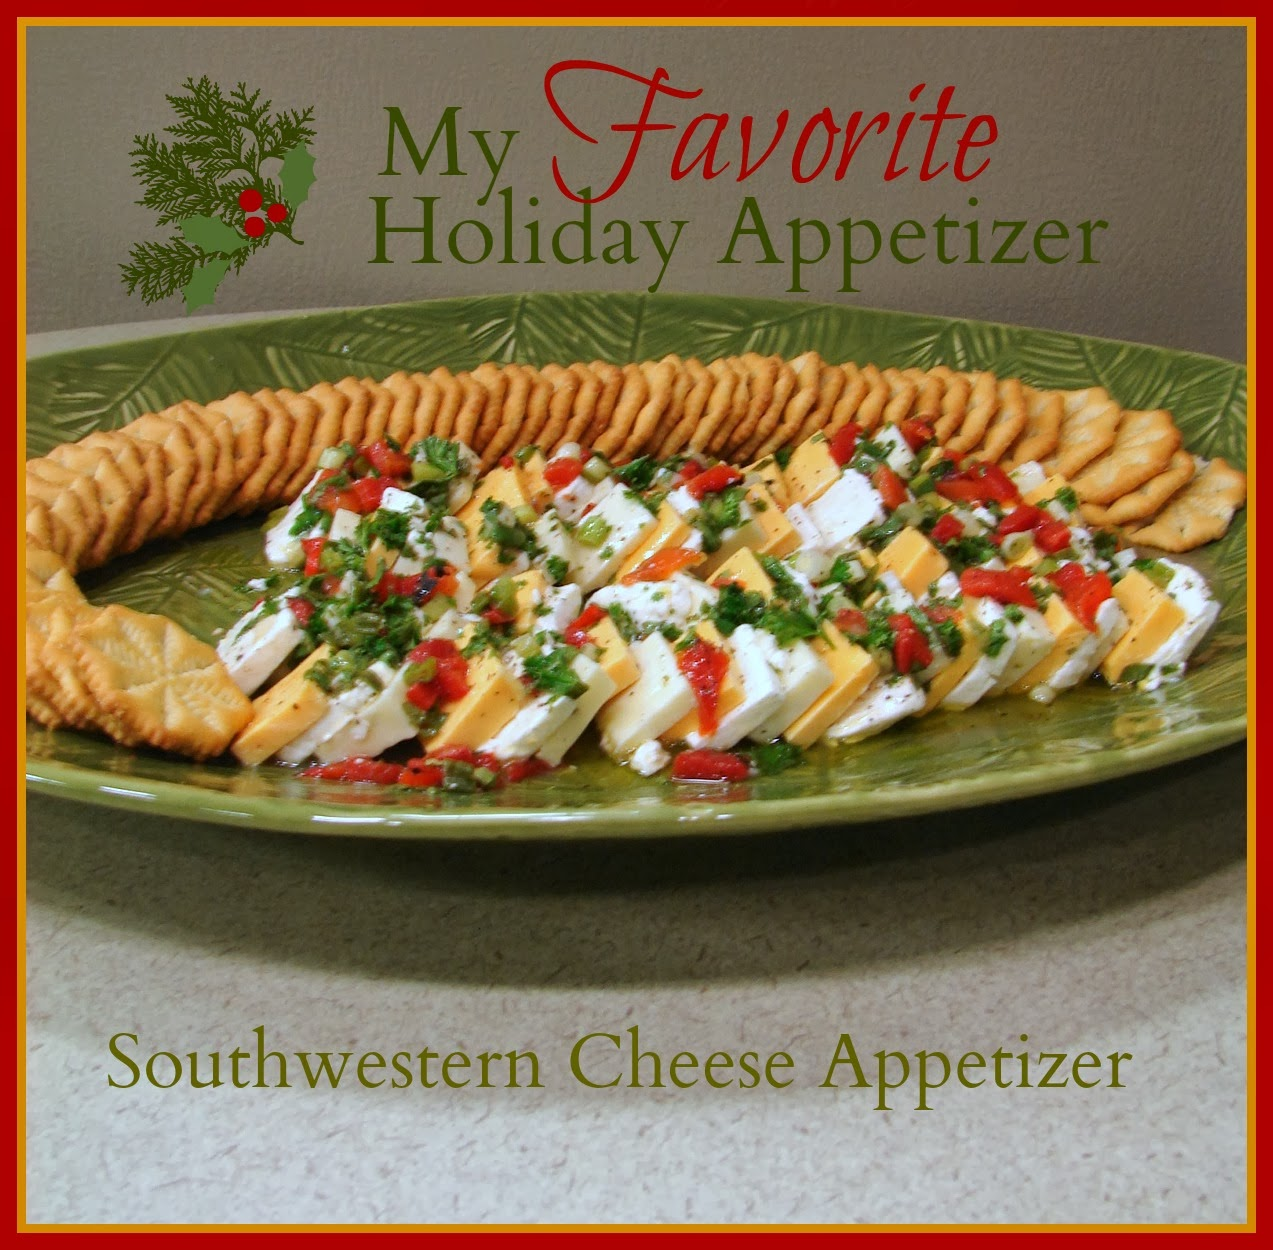 Custom Comforts: My Favorite Holiday Appetizer